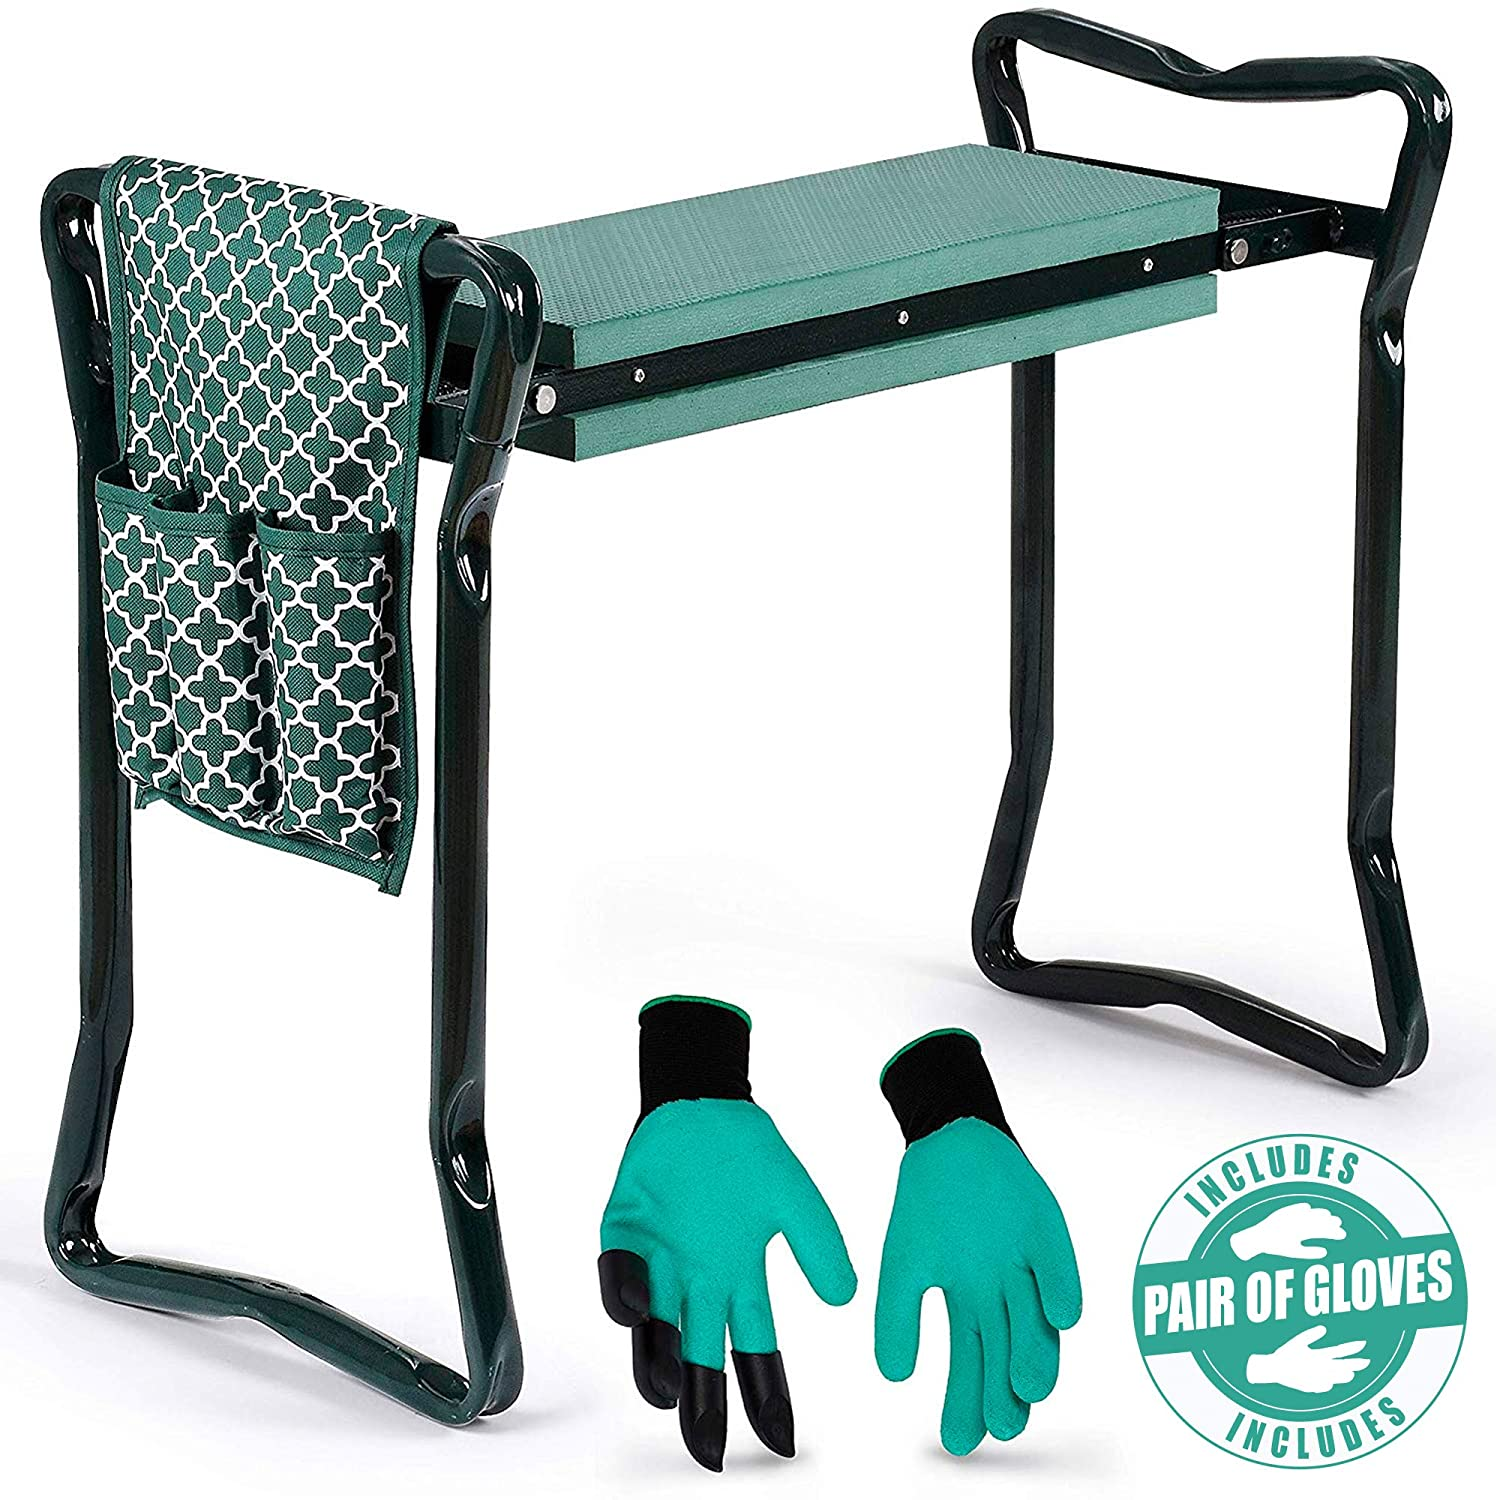 Garden Kneeler And Seat – Protects Your Knees, Clothes From Dirt Grass Stains – Foldable Stool For Ease Of Storage – EVA Foam Pad – Sturdy and Lightweight – Bench Comes With A Free Tool Pouch